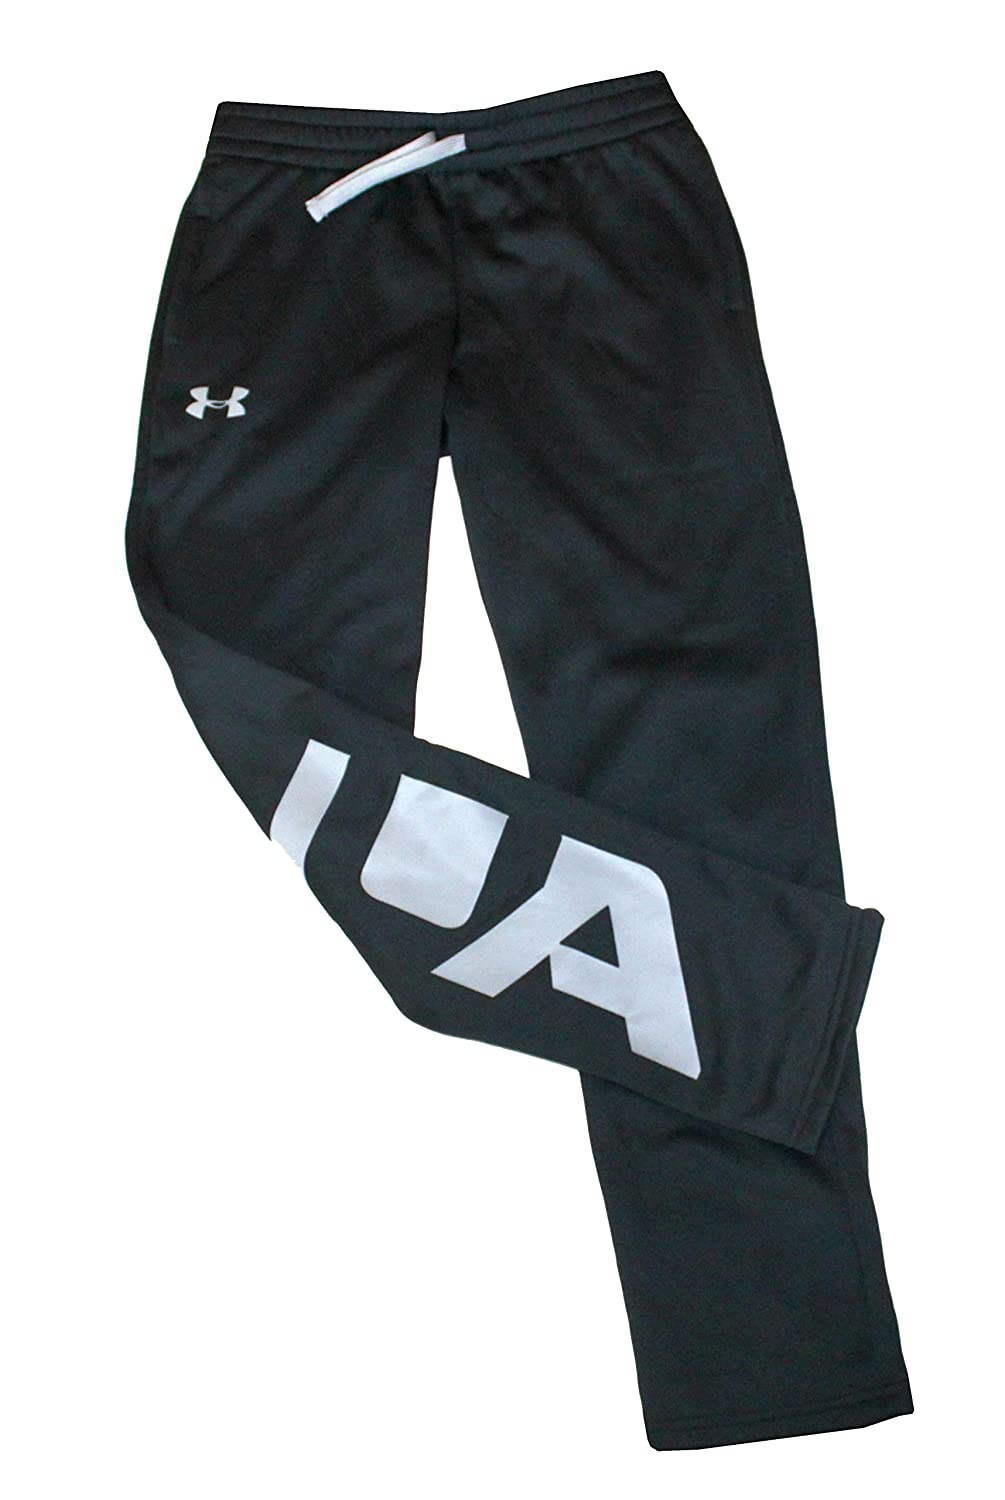 Under Armour Youth Boys Track Pants 1331651